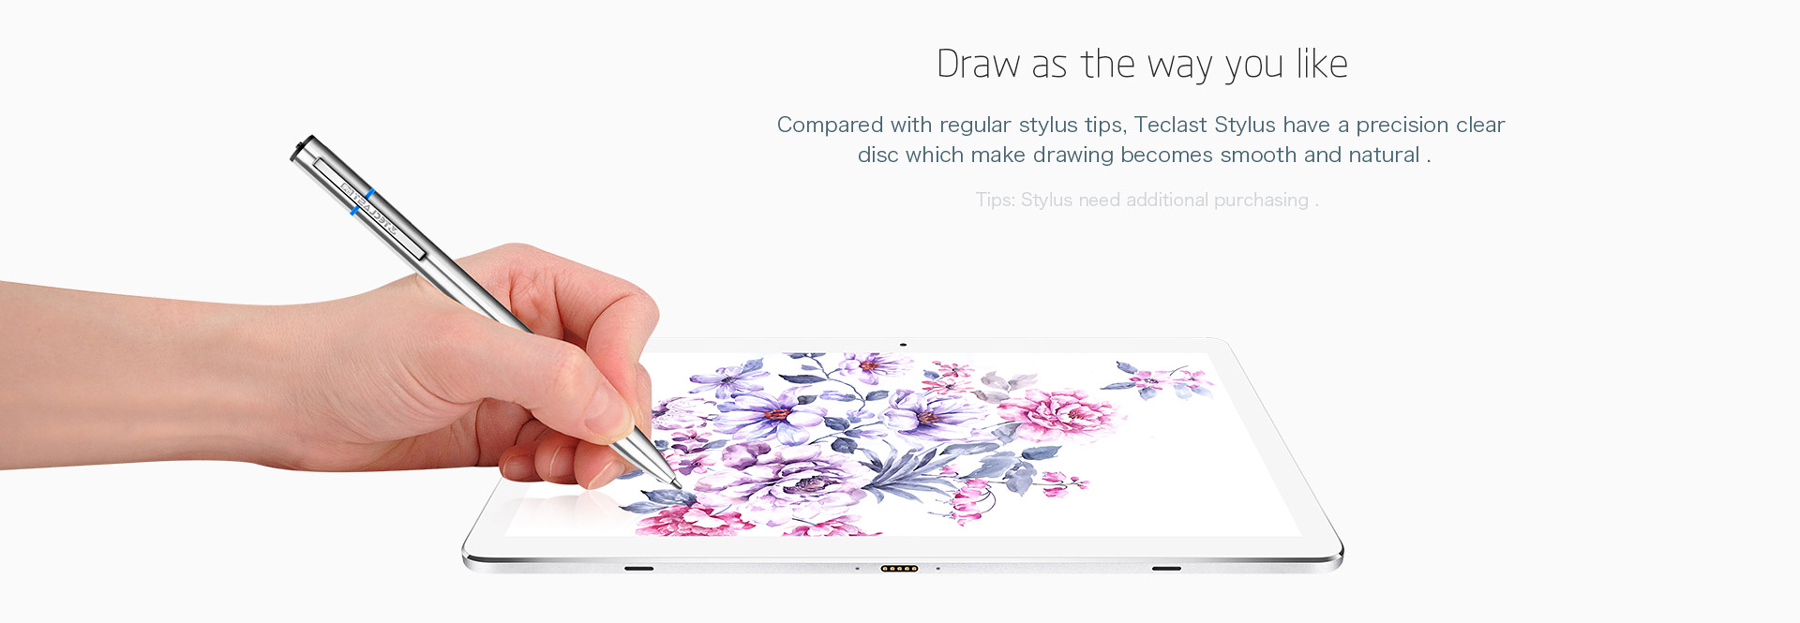 Teclast Tbook 16 Pro 2 in 1 Tablet PC Windows 10 + Android 5.1 11.6 inch IPS Screen Intel Cherry Trail X5 Z8300 64bit Quad Core 1.44GHz 4GB RAM 64GB ROM Camera OTG